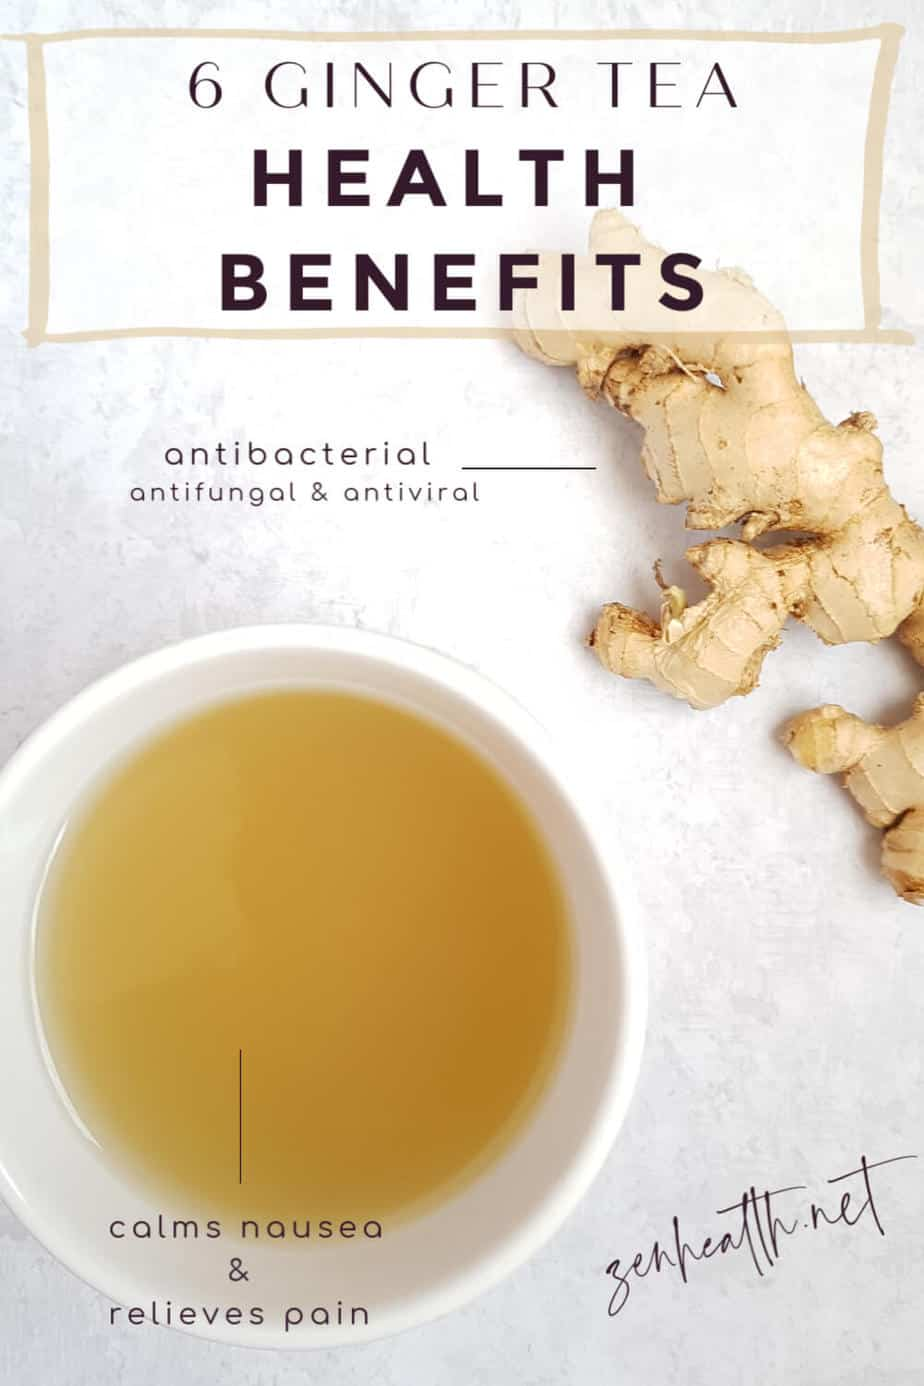 6 Ginger Tea Health Benefits that are proven #gingertea #gingerteabenefits #gingerbenefits #benefitsofginger